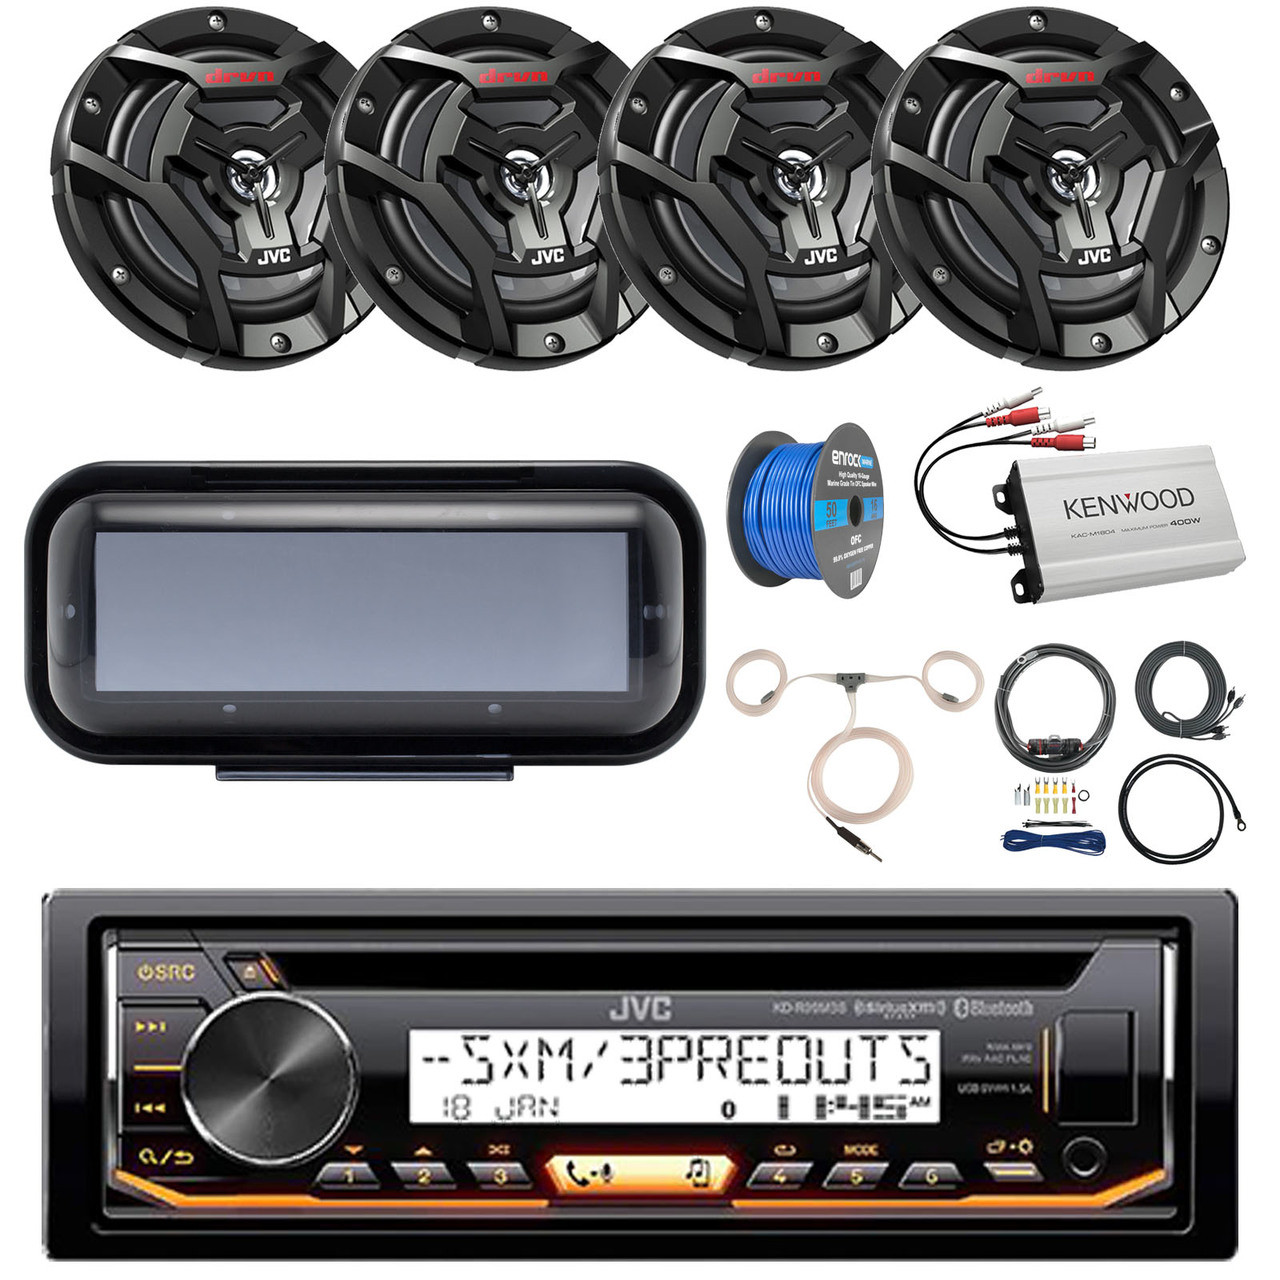 small resolution of pontoon boat audio package jvc kd r99mbs marine bluetooth cd receiver radio cover